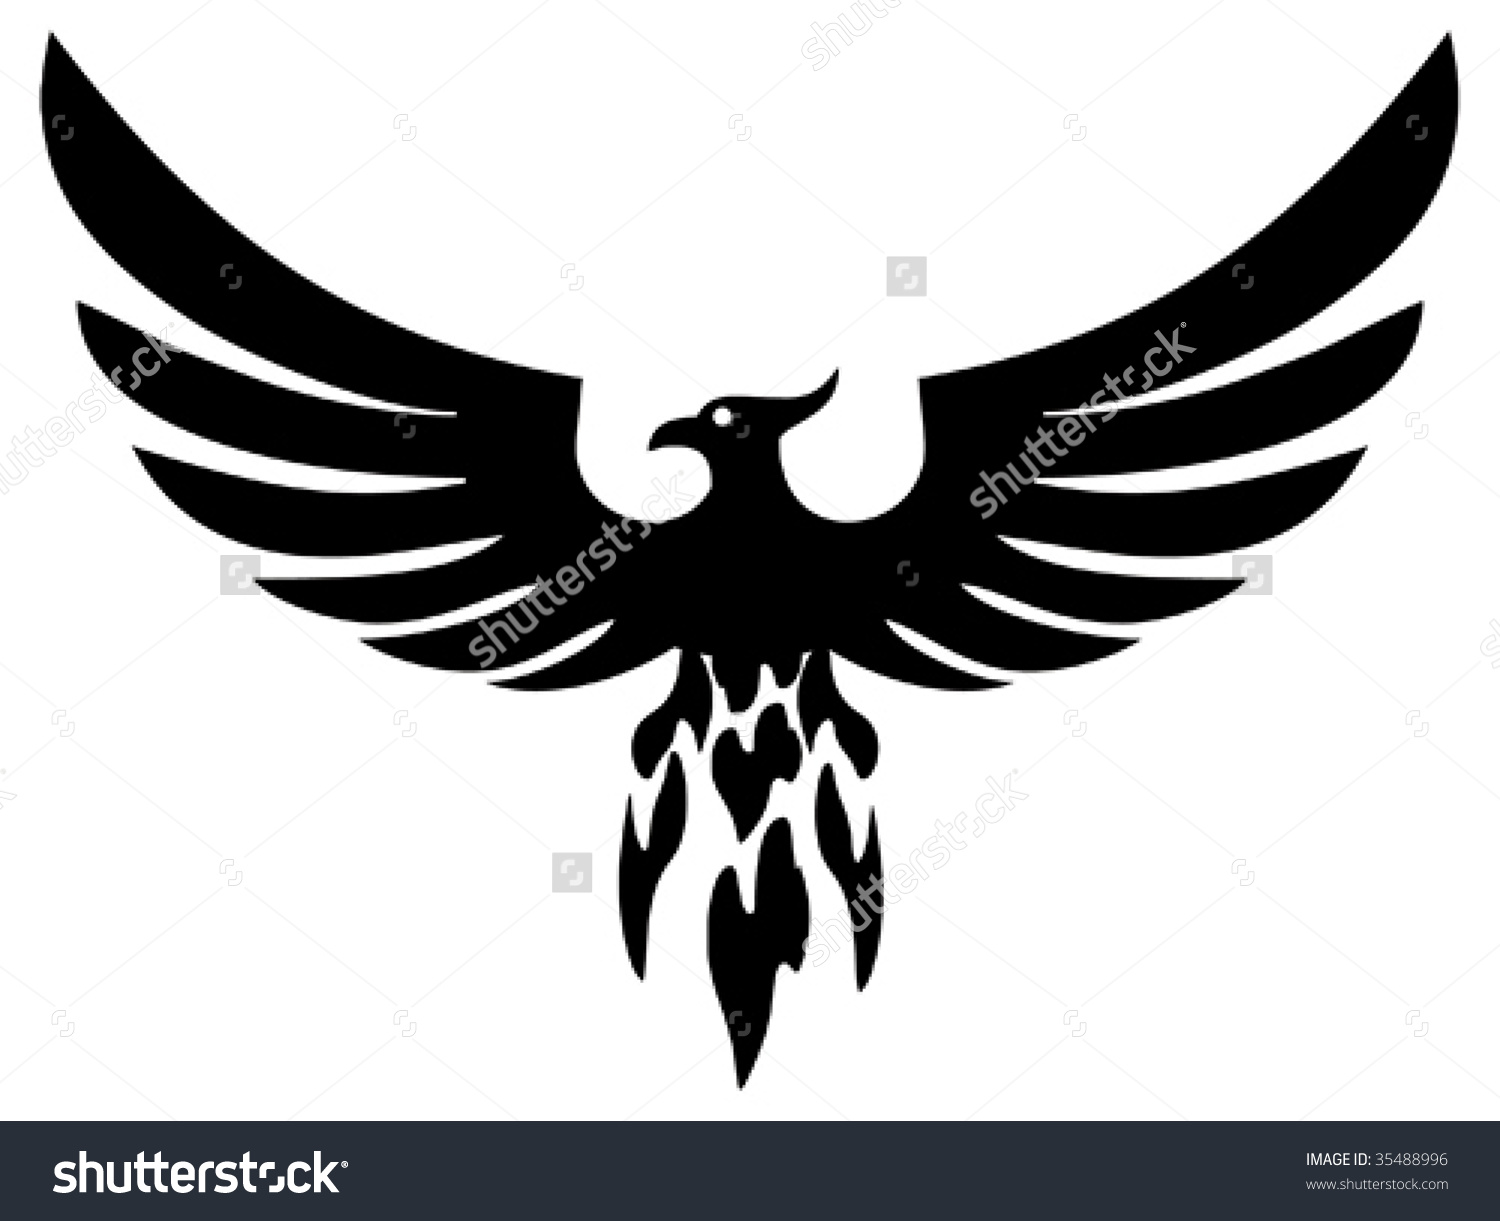 pheonix silhouette clipart 20 free cliparts